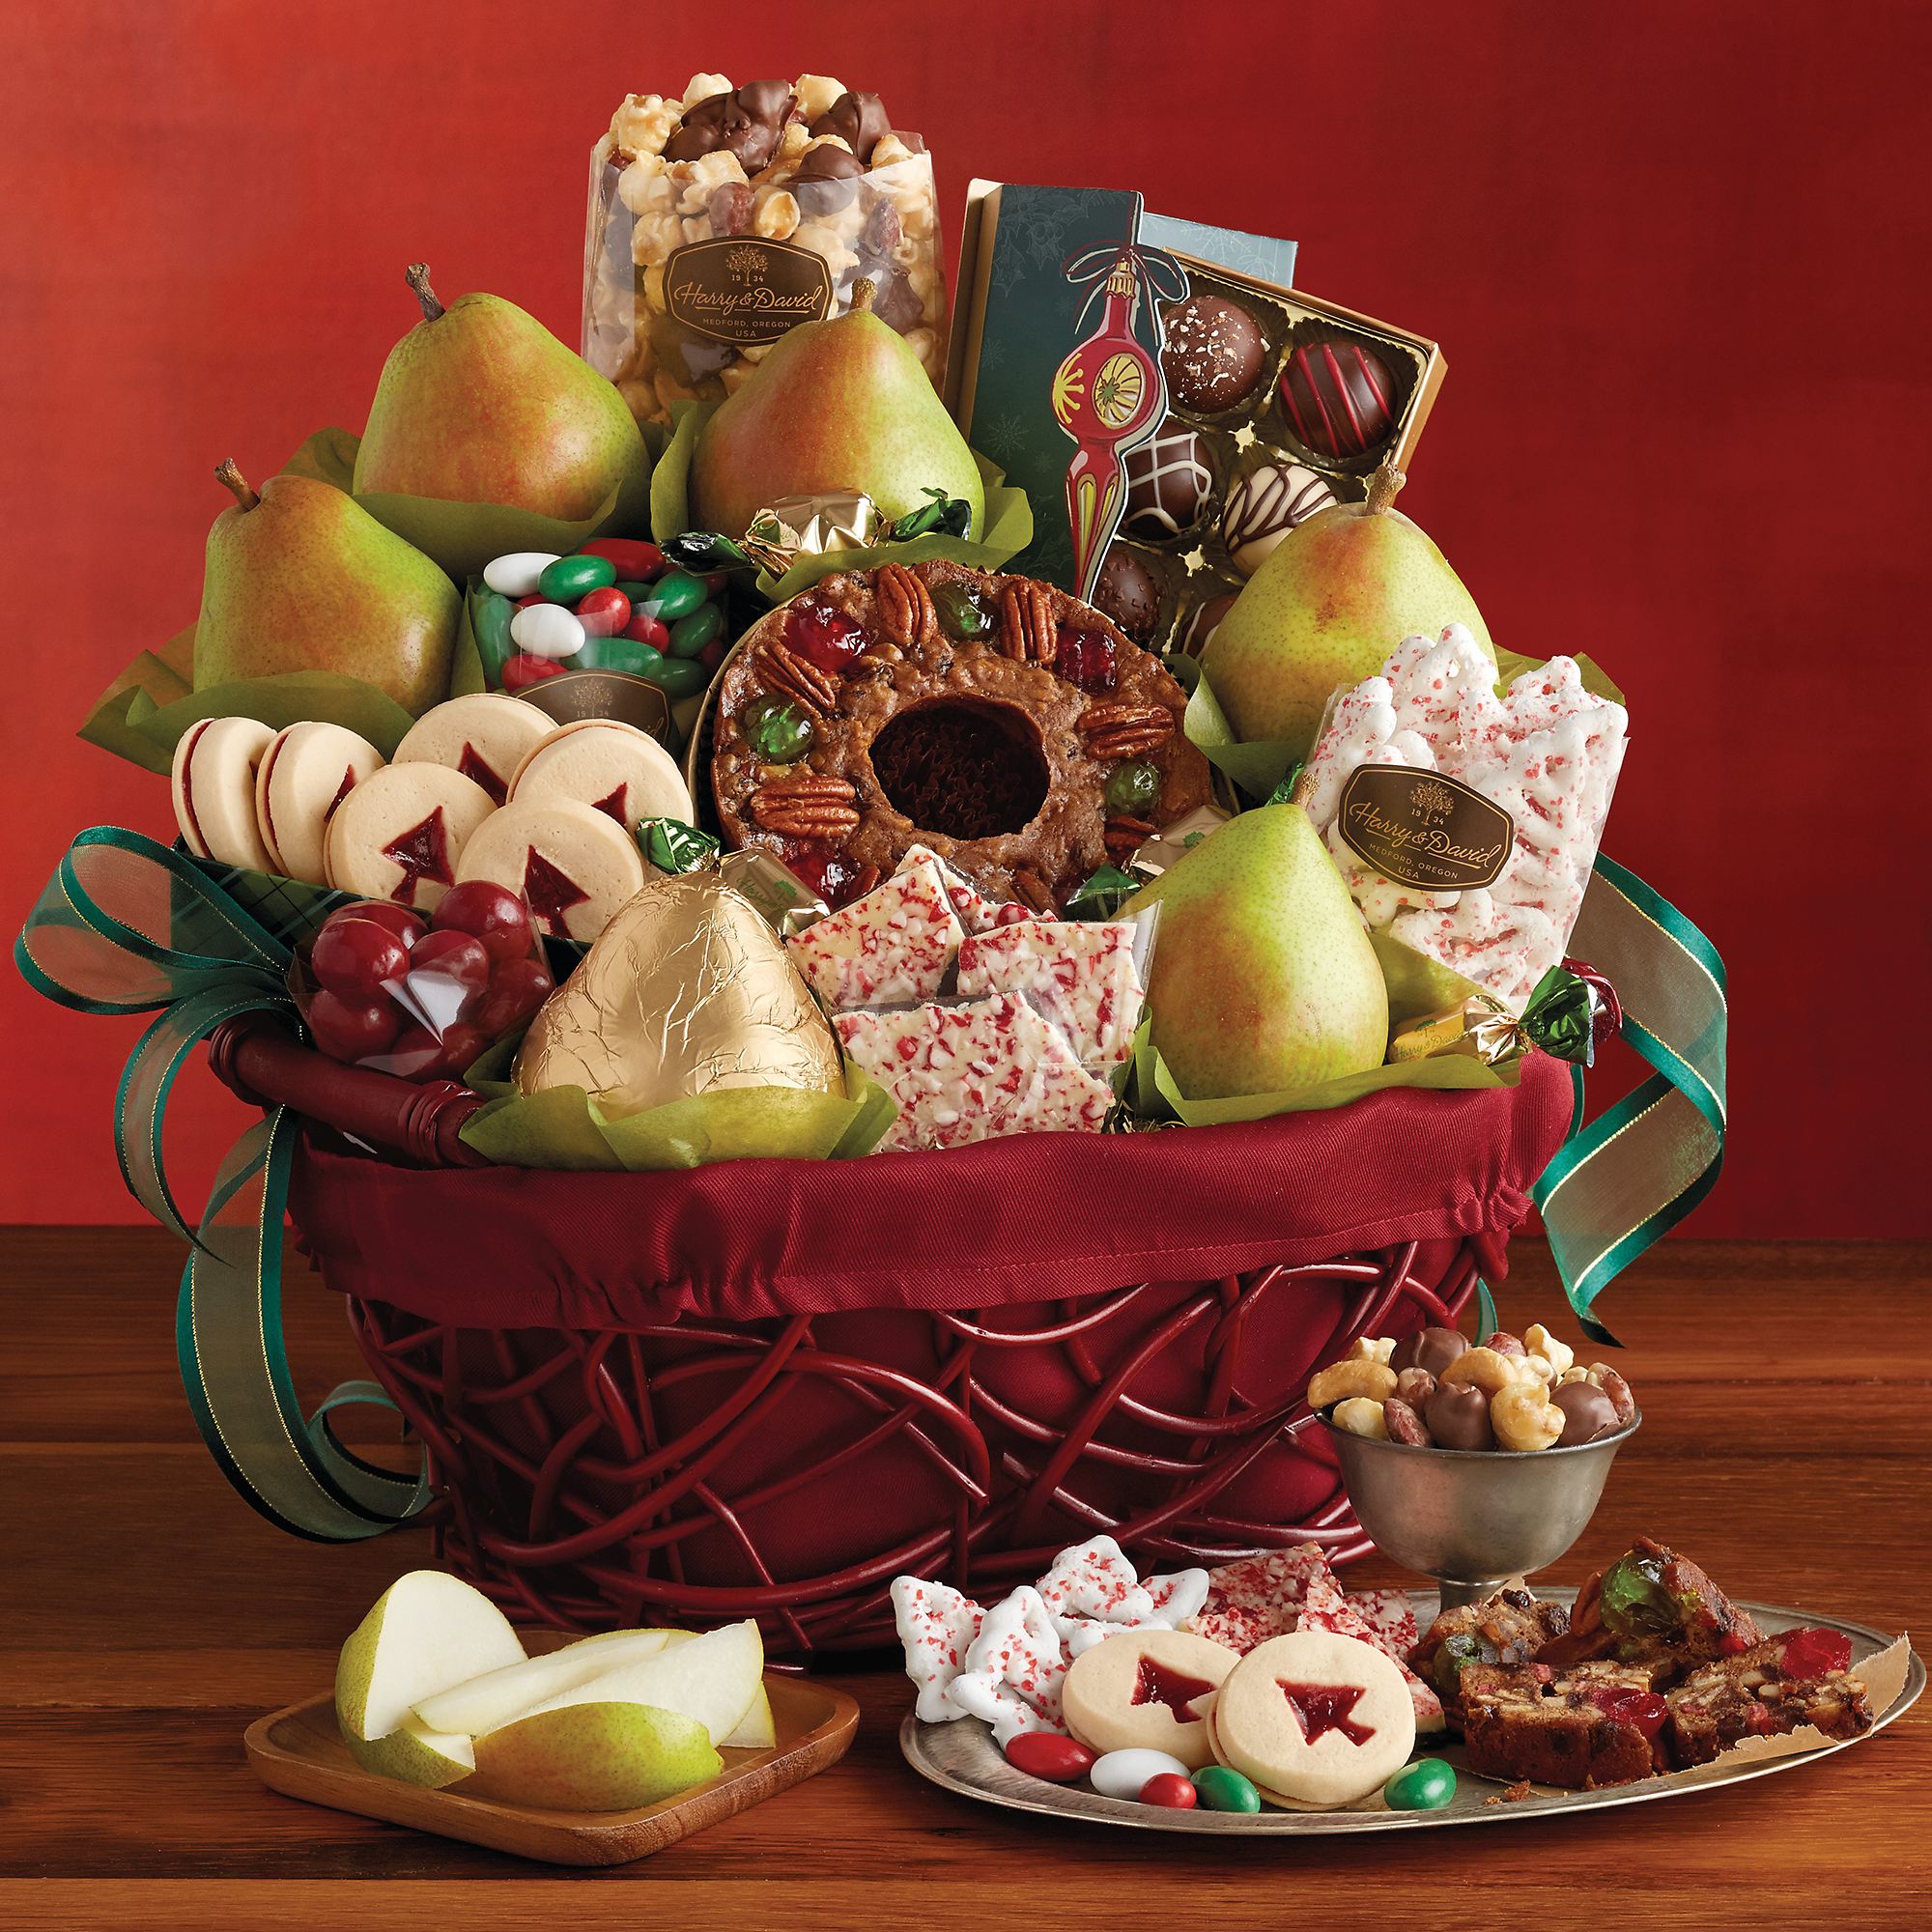 Gift Baskets Harry And David: Orchard gift basket apple baskets ...